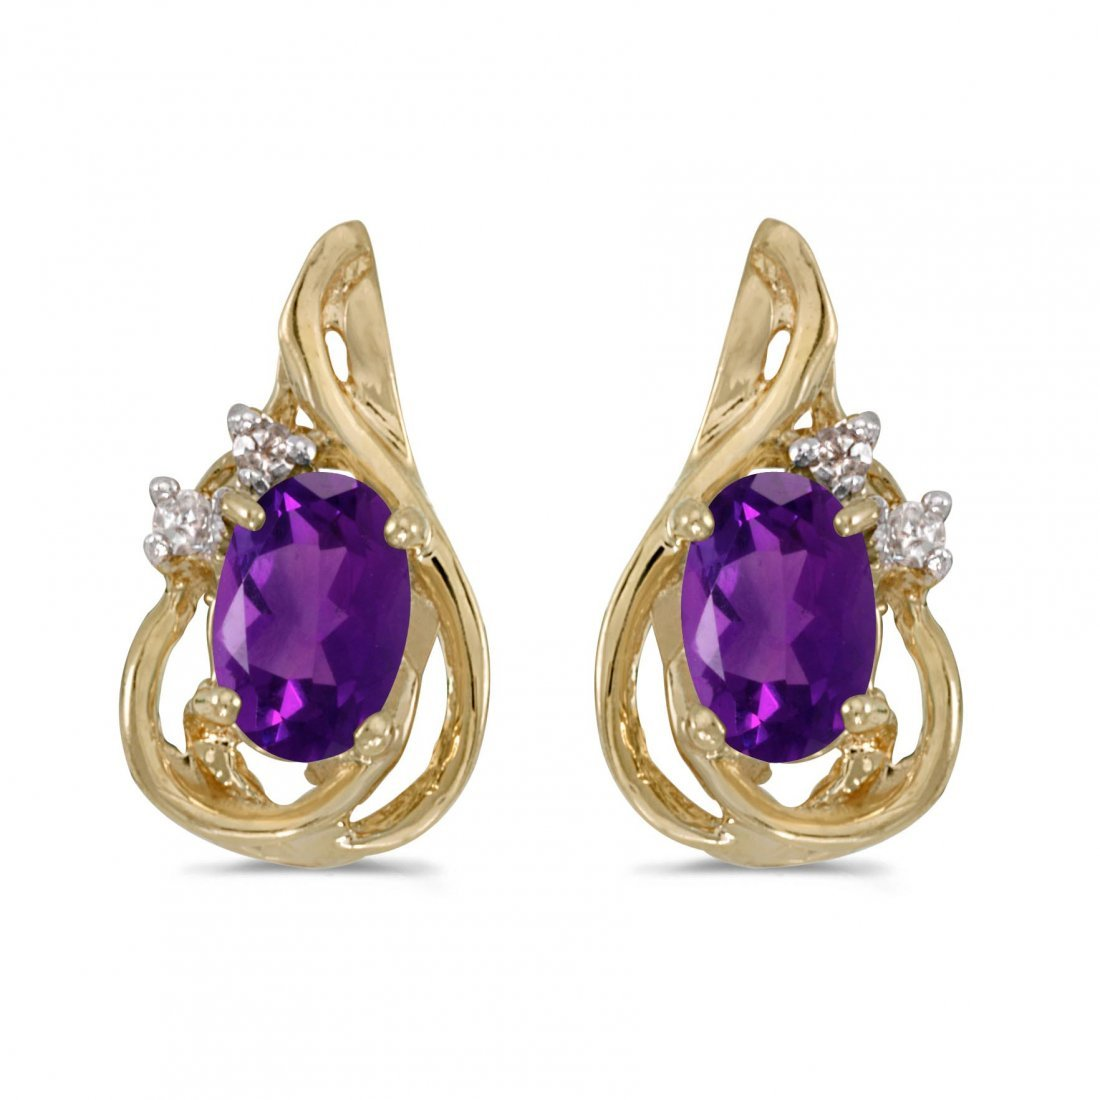 Certified 14k Yellow Gold Oval Amethyst And Diamond Tea